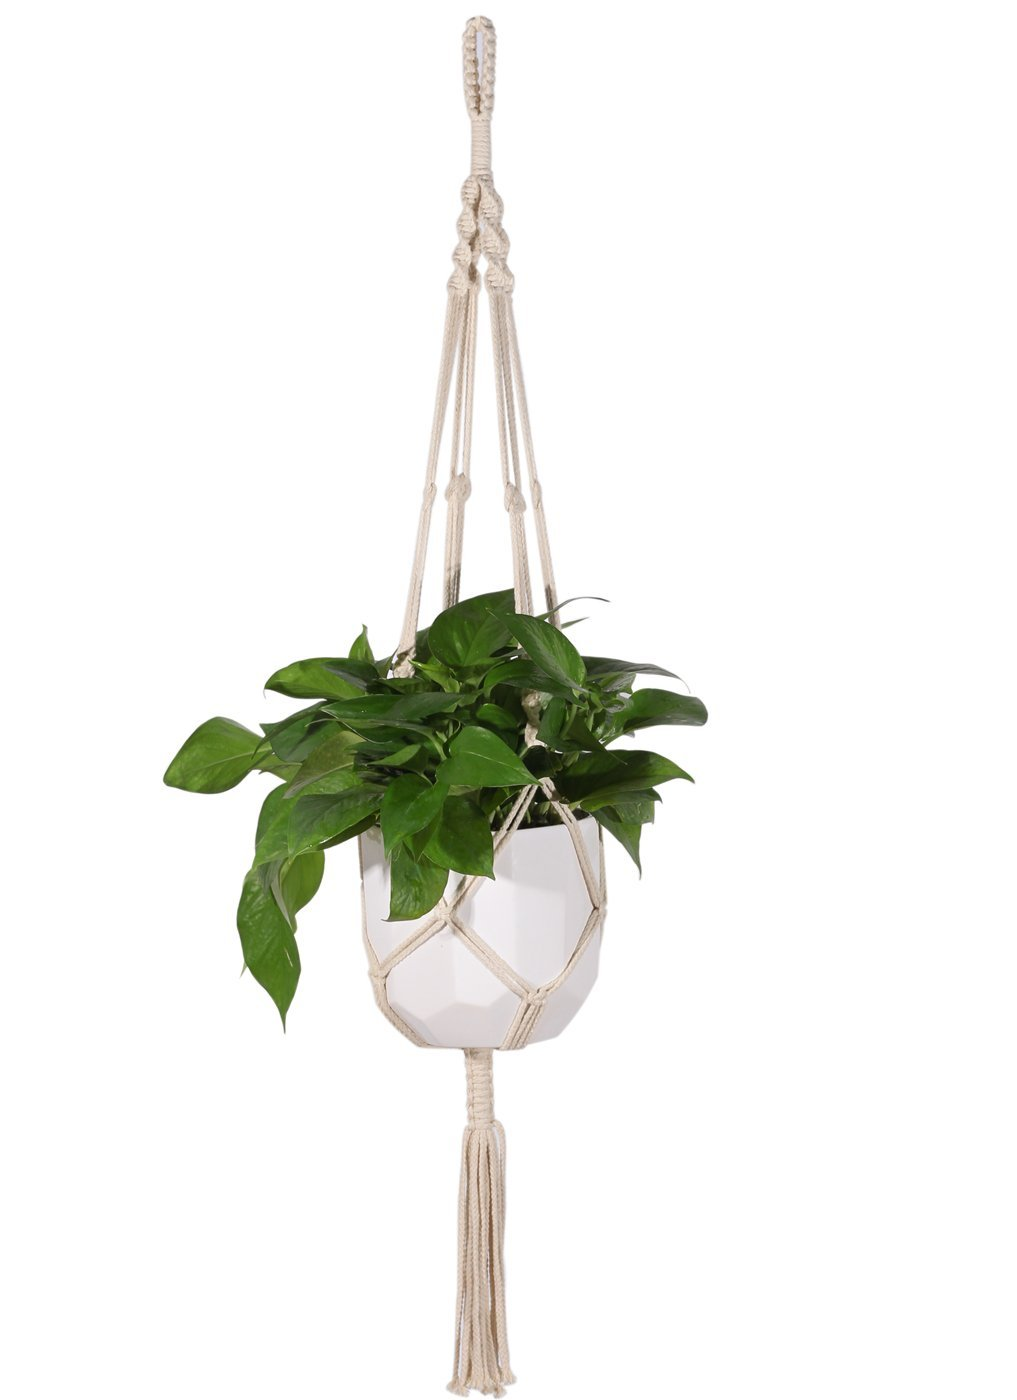 Spring is upon us. - Explore how to make a Macrame Plant Hanger for your green friends.